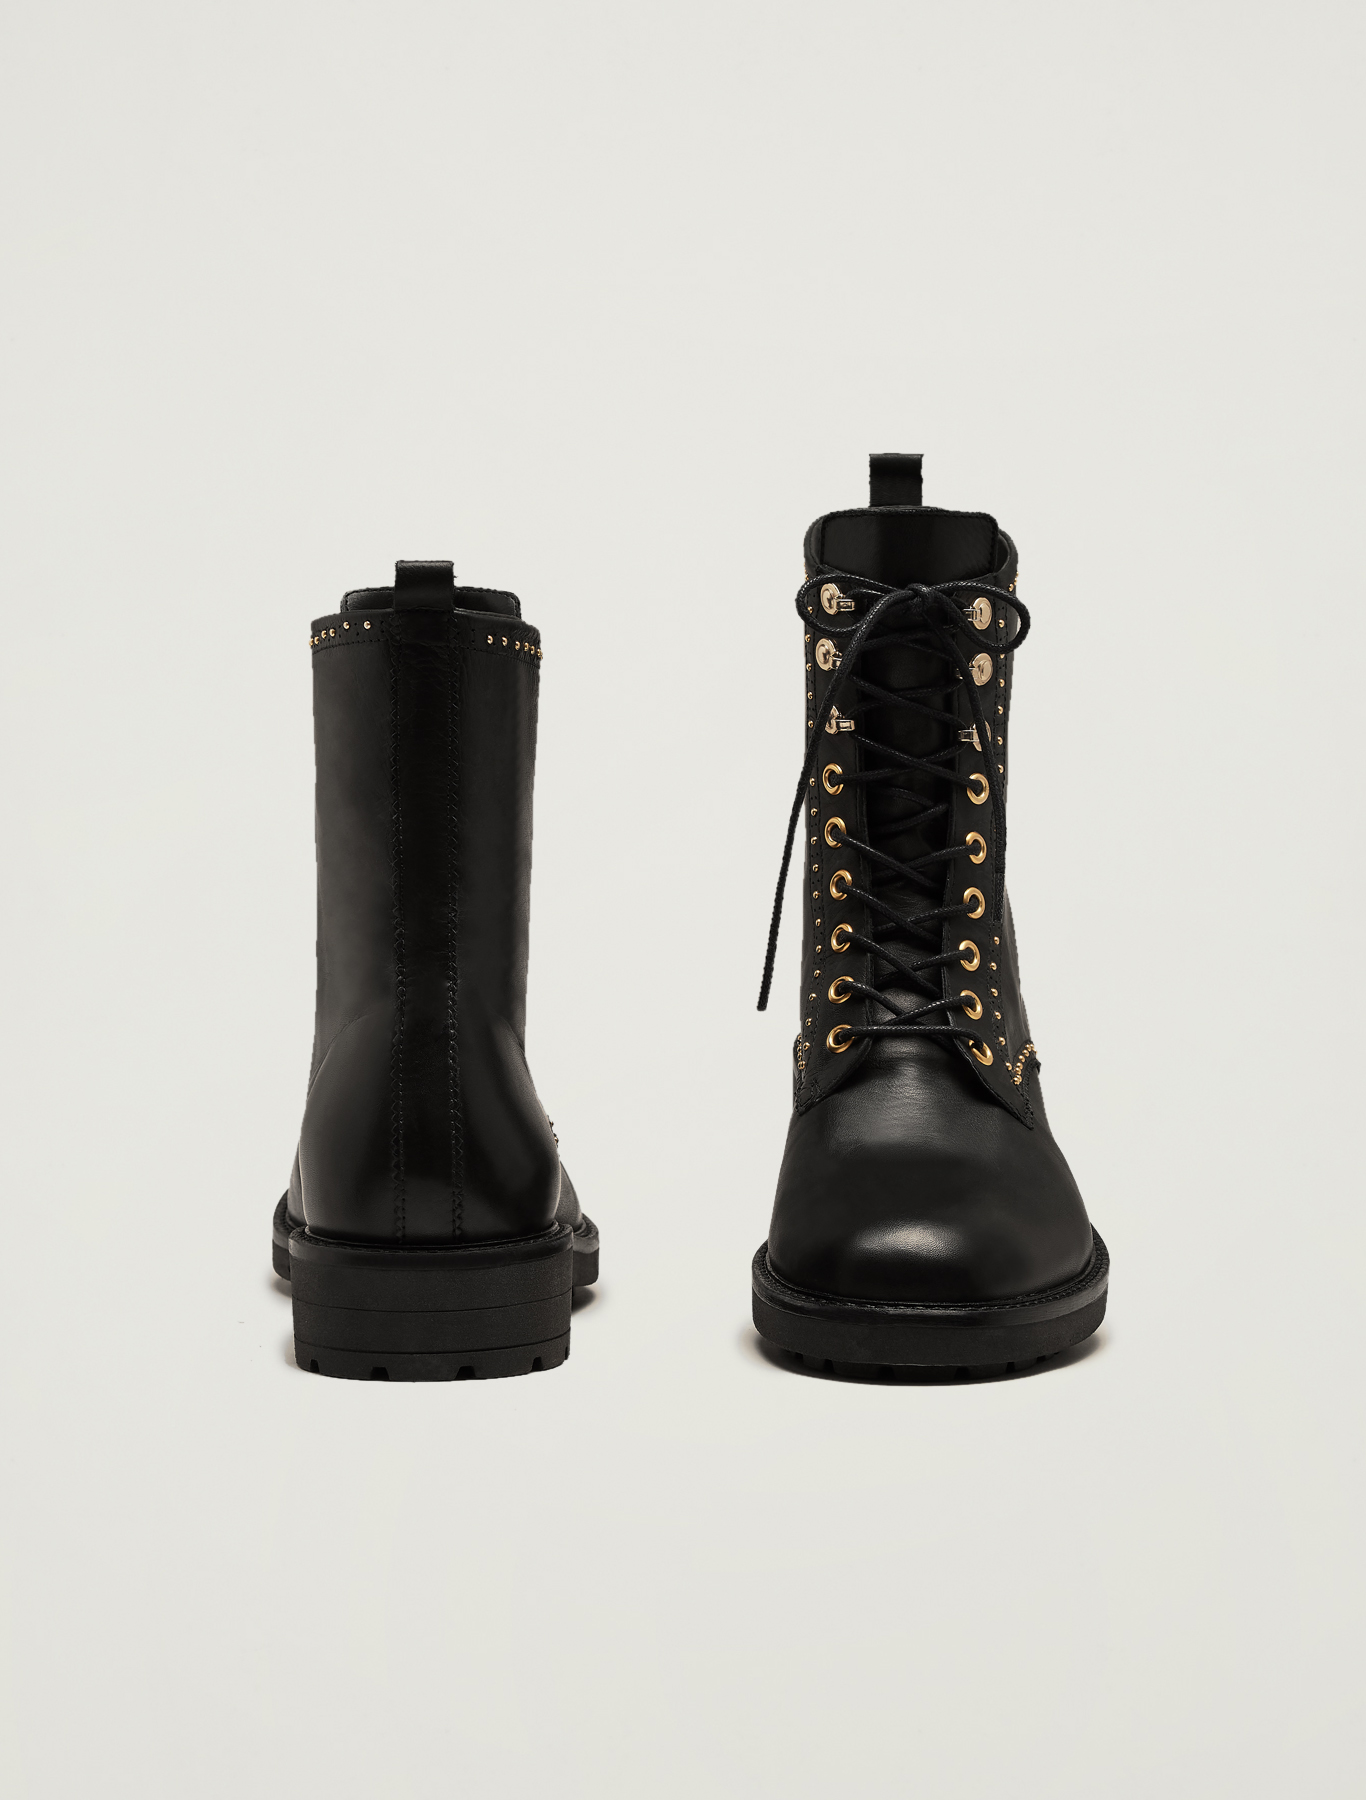 Leather combat boots with micro studs - black - pennyblack